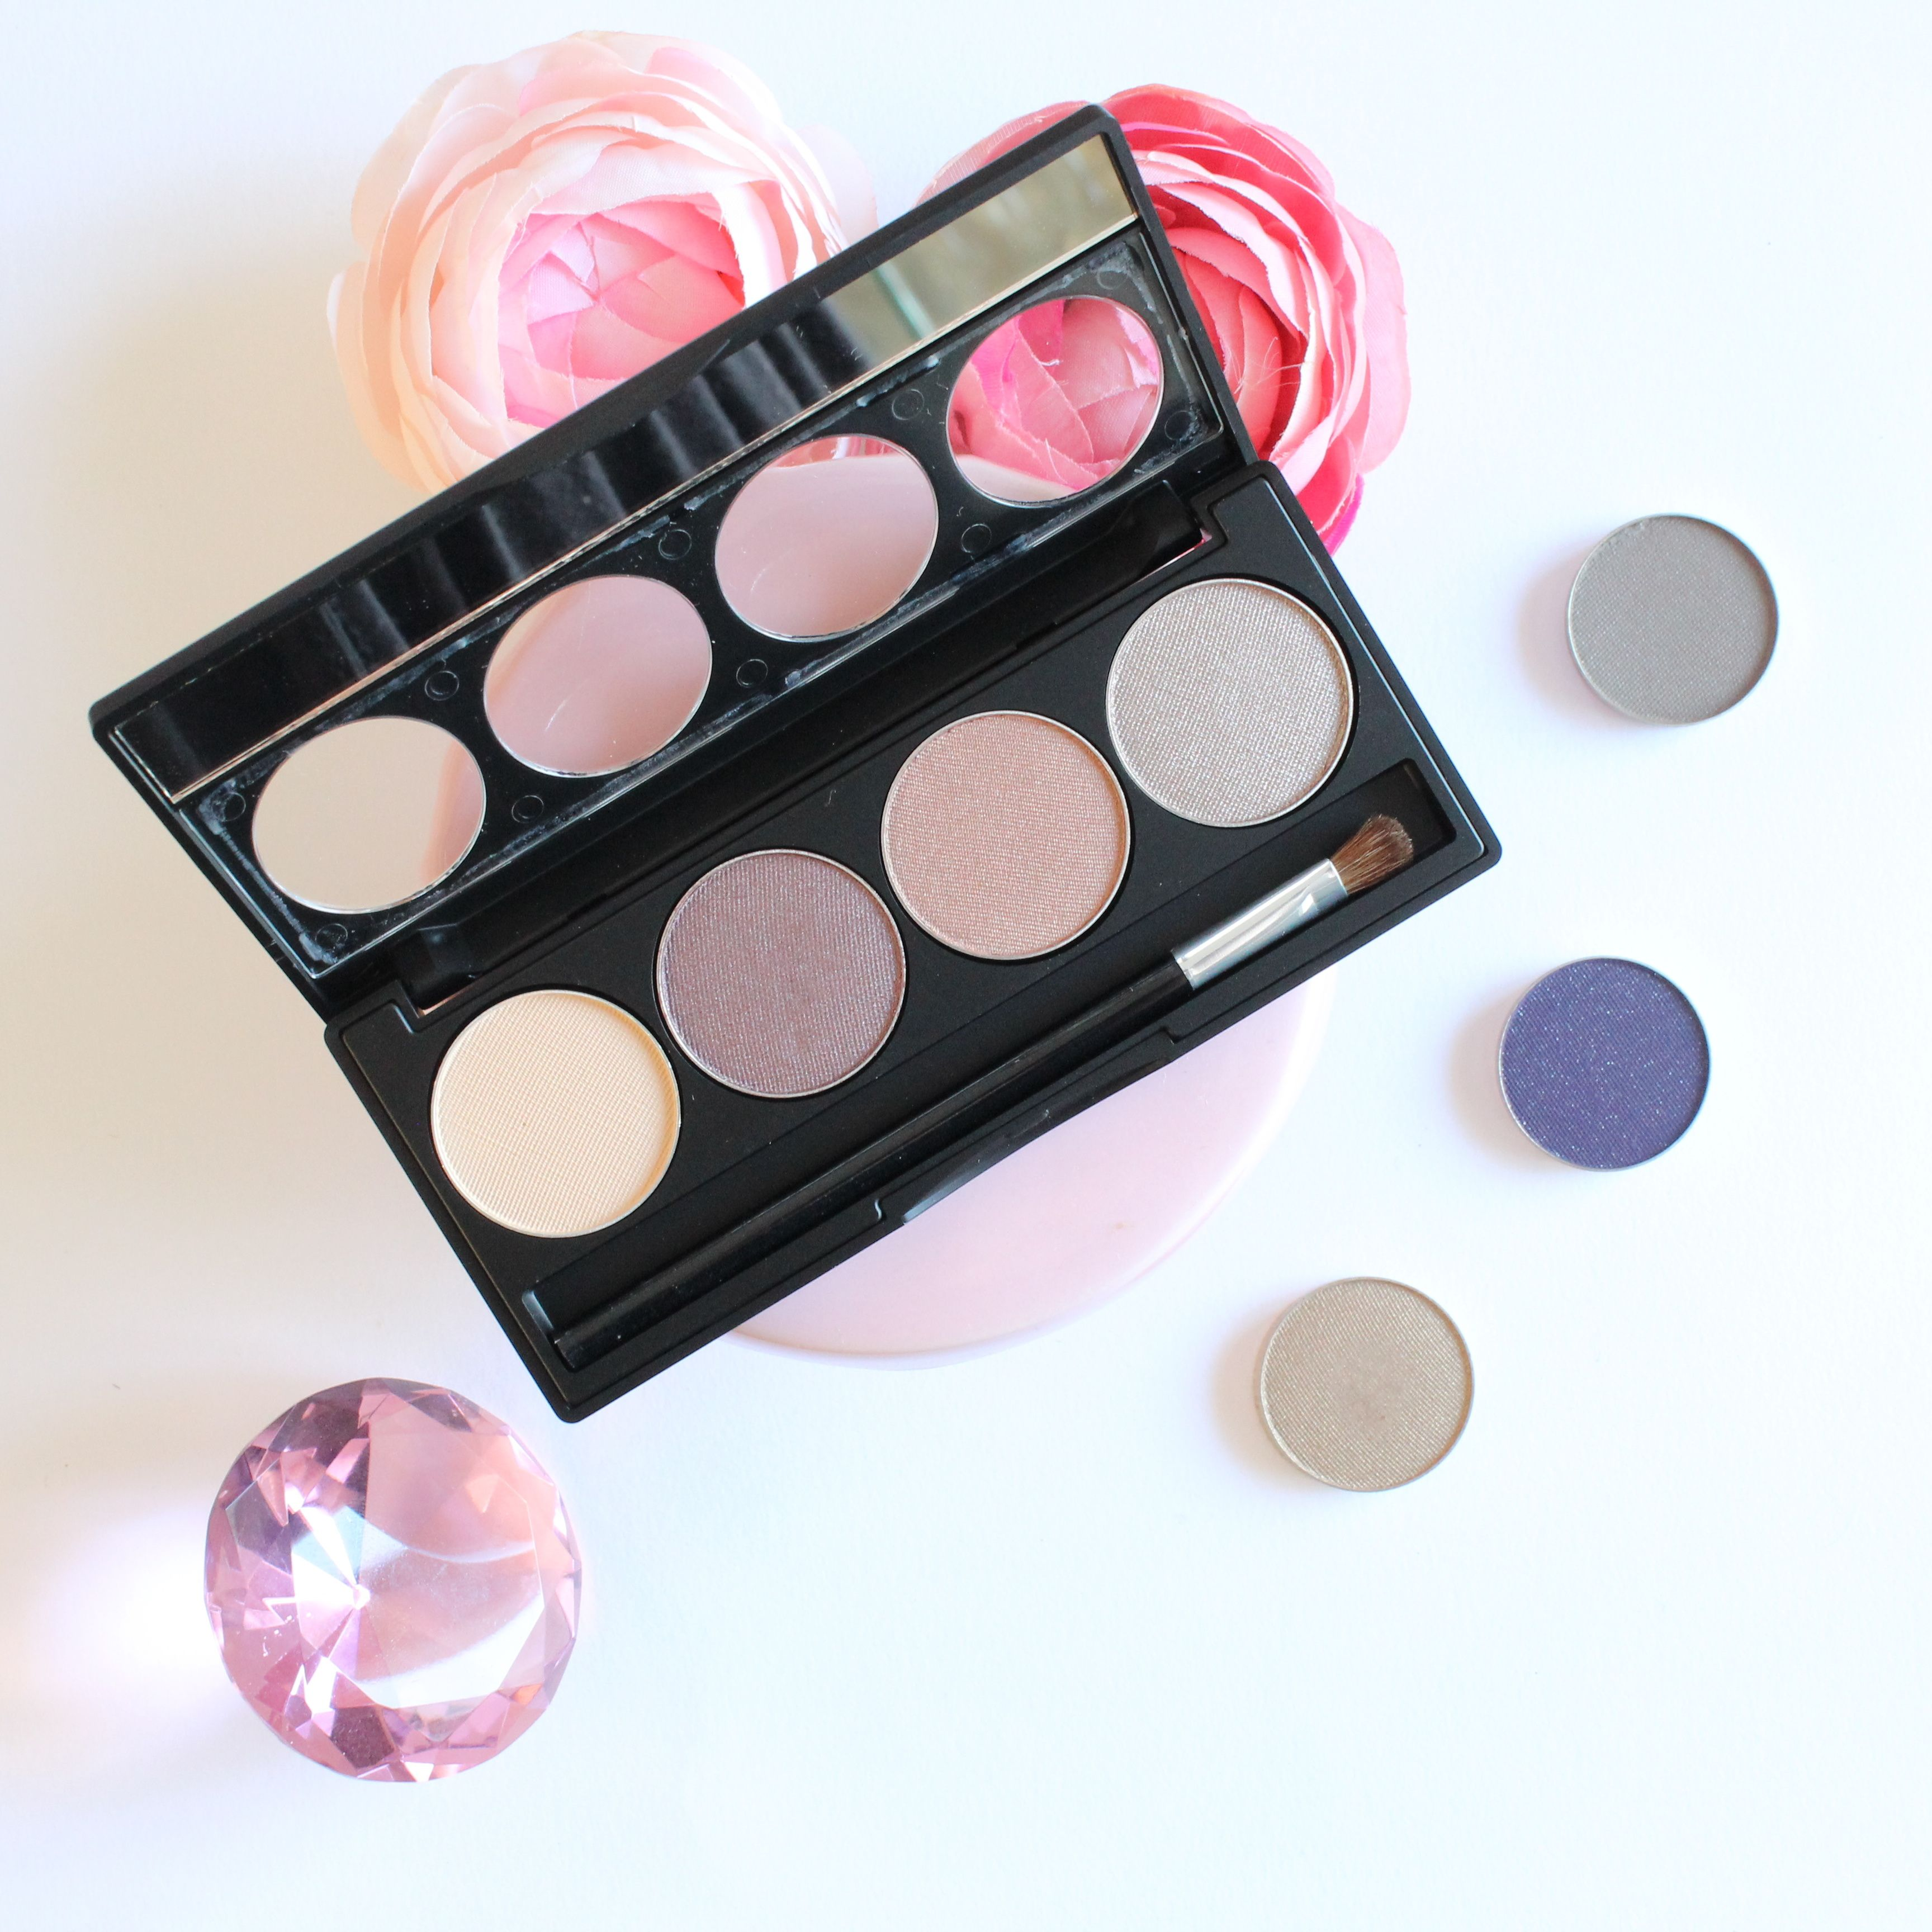 Phoenix Eyeshadows are designed for easy and long lasting wear. We have a wonderful array of colours to choose from. They have beautiful matte, reflective, shimmer and satin textures.